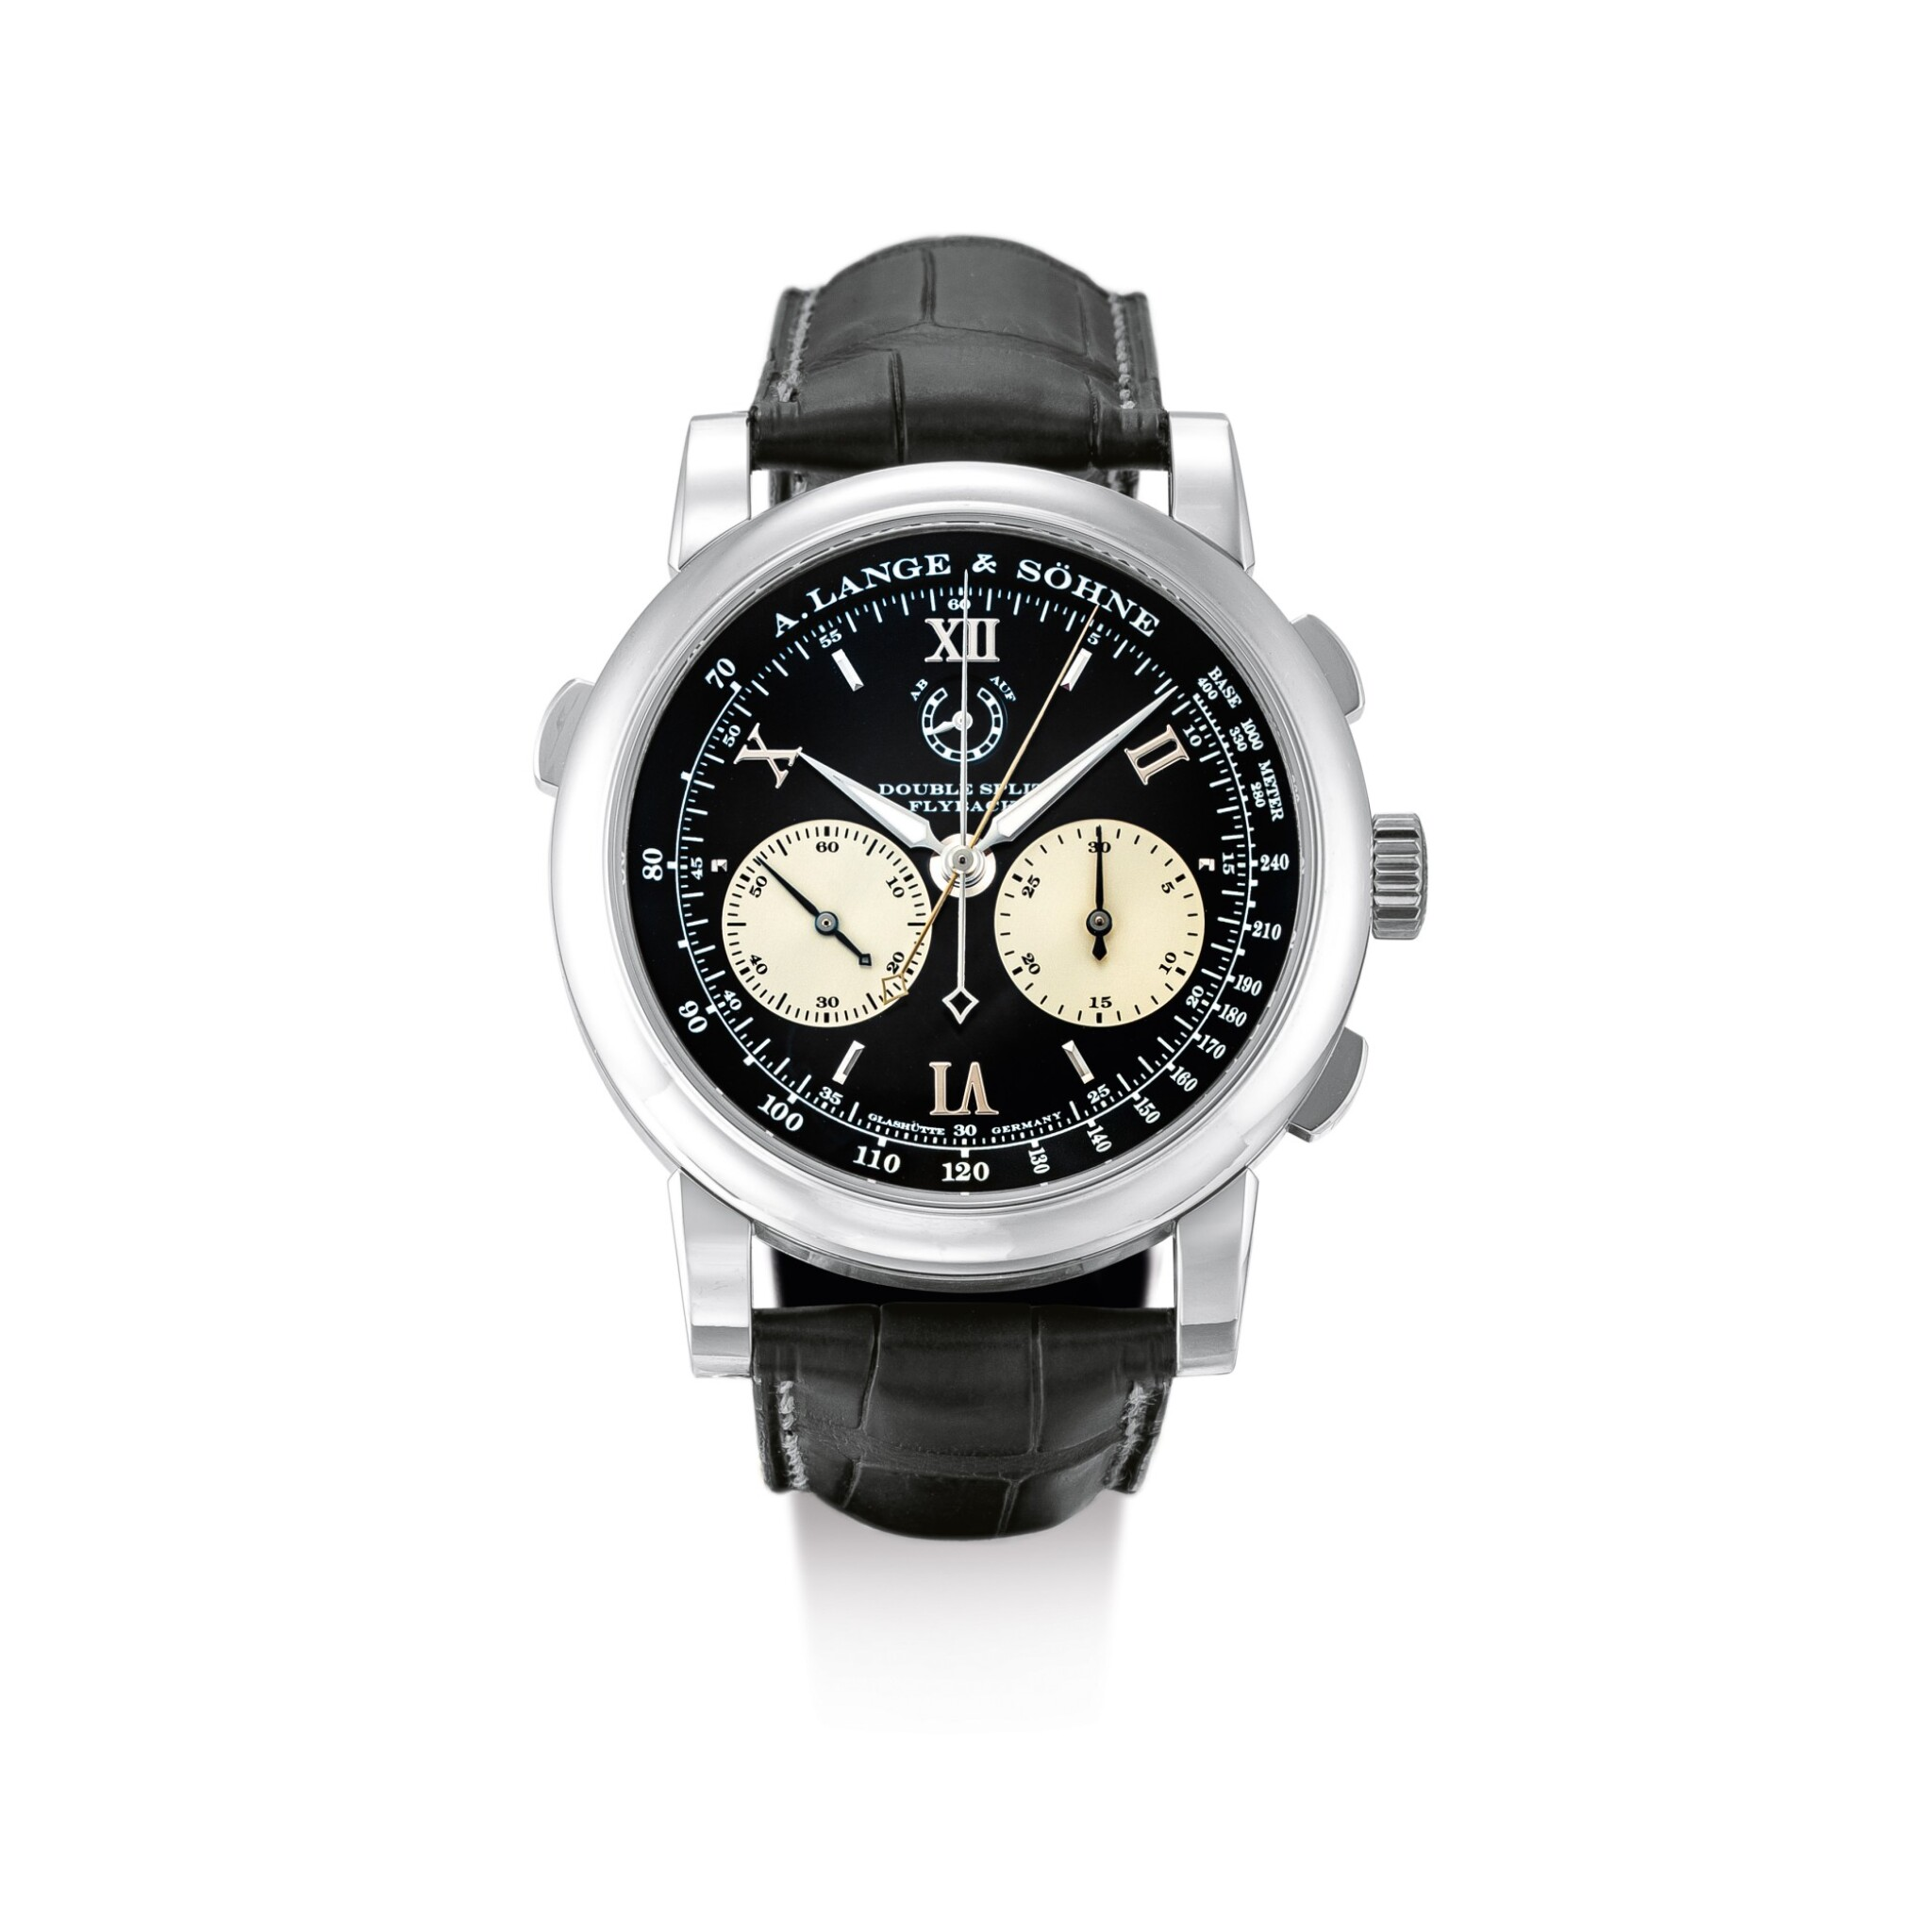 """View full screen - View 1 of Lot 2067. A. LANGE & SÖHNE   SAXONIA DOUBLE SPLIT DATOGRAPH, REFERENCE 404.035F, A PLATINUM DOUBLE SPLIT CHRONOGRAPH WRISTWATCH WITH POWER RESERVE INDICATION AND HACKING DEAD SECONDS, CIRCA 2009   朗格   """"Saxonia Double Split Datograph 型號404.035F  鉑金雙追針計時腕錶,備動力儲備顯示,機芯編號47348,錶殼編號154626,約2009年製""""."""